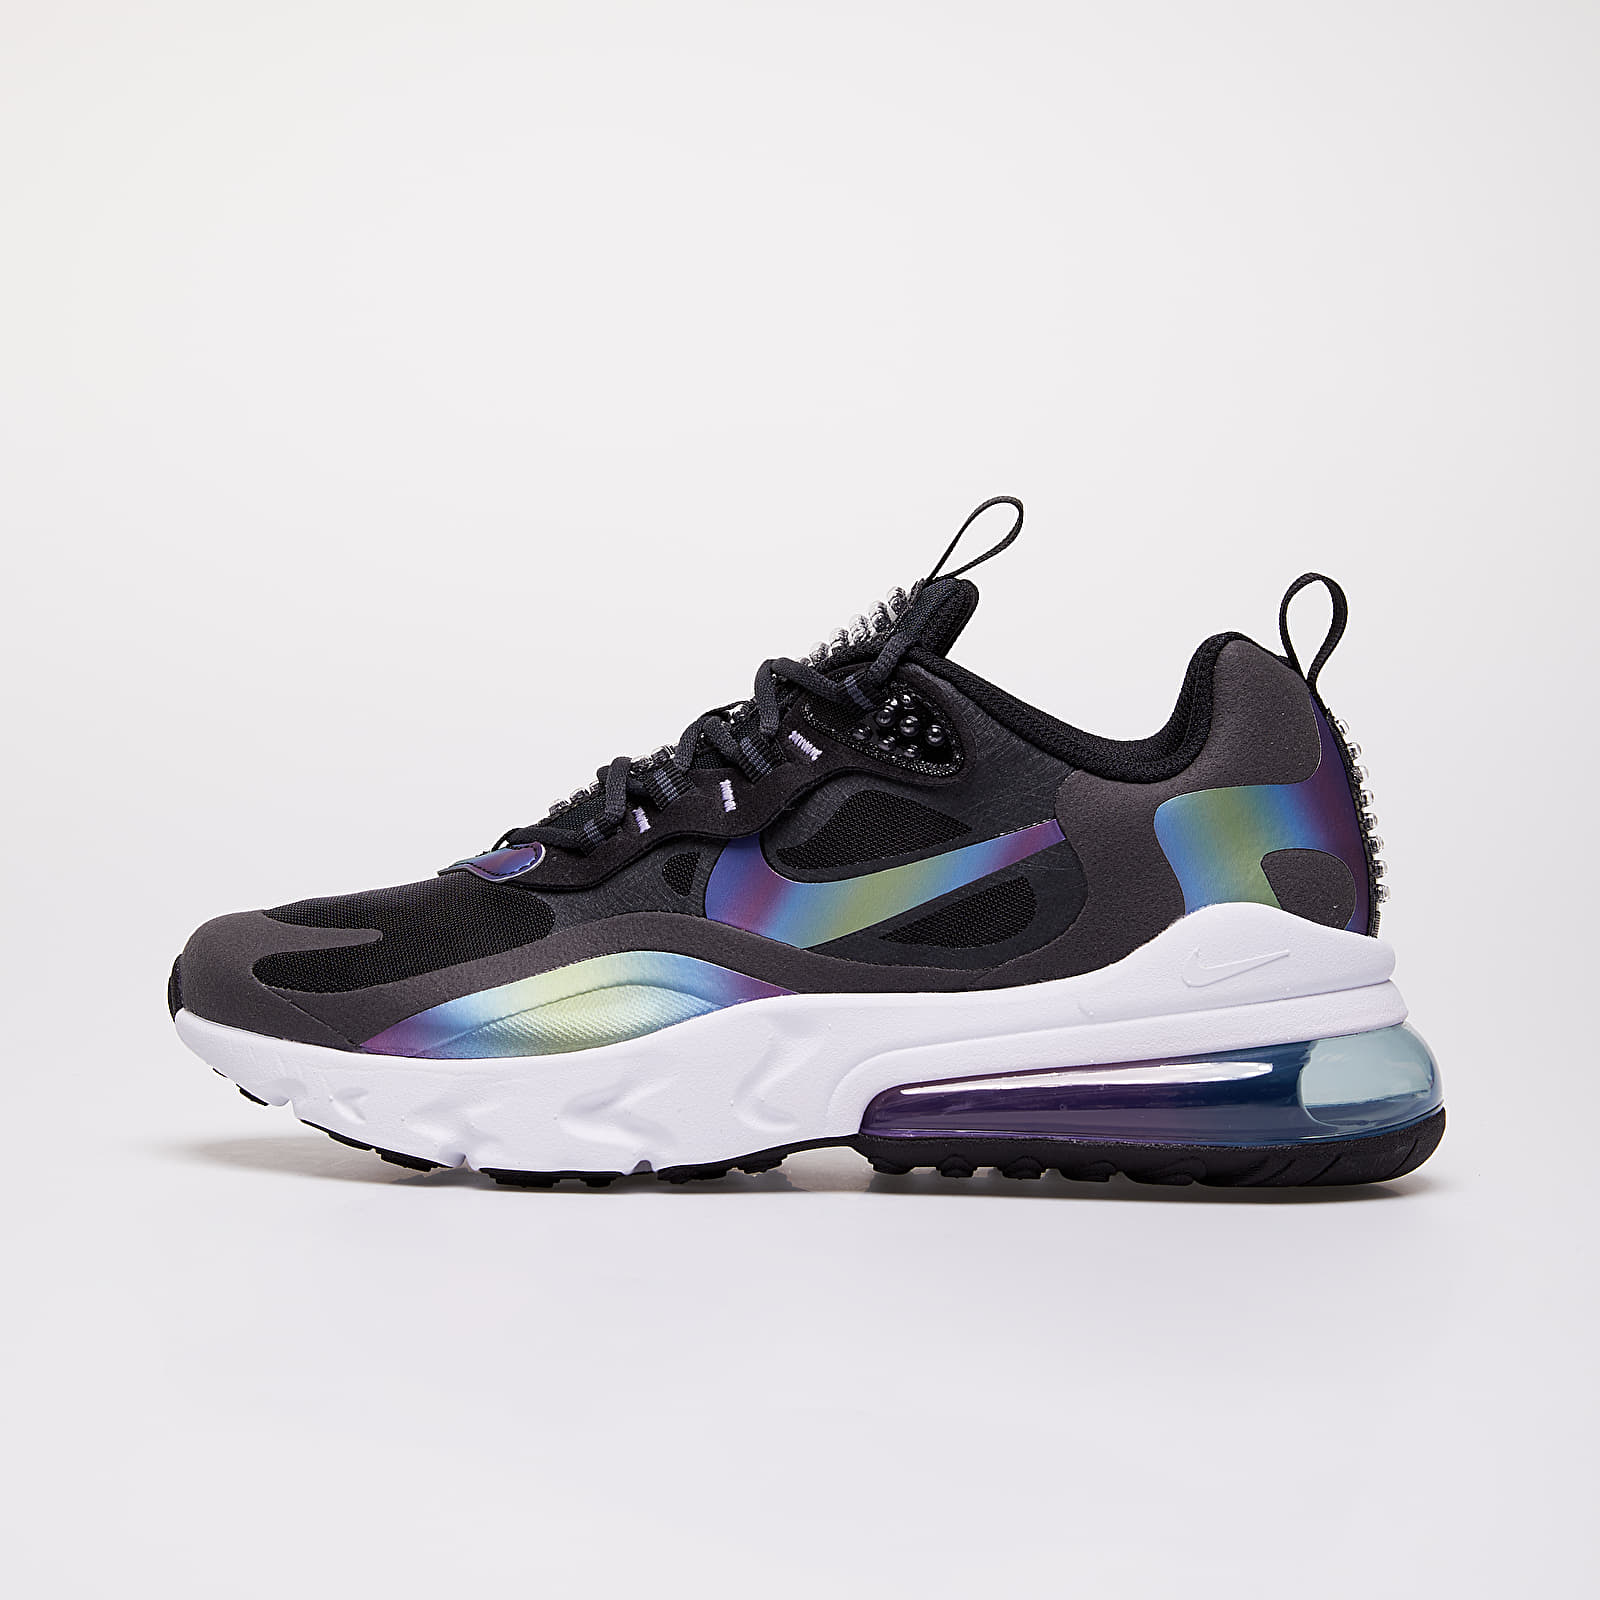 Zapatillas de niño Nike Air Max 270 React 20 (GS) Dk Smoke Grey/ Multi-Color-Black-White